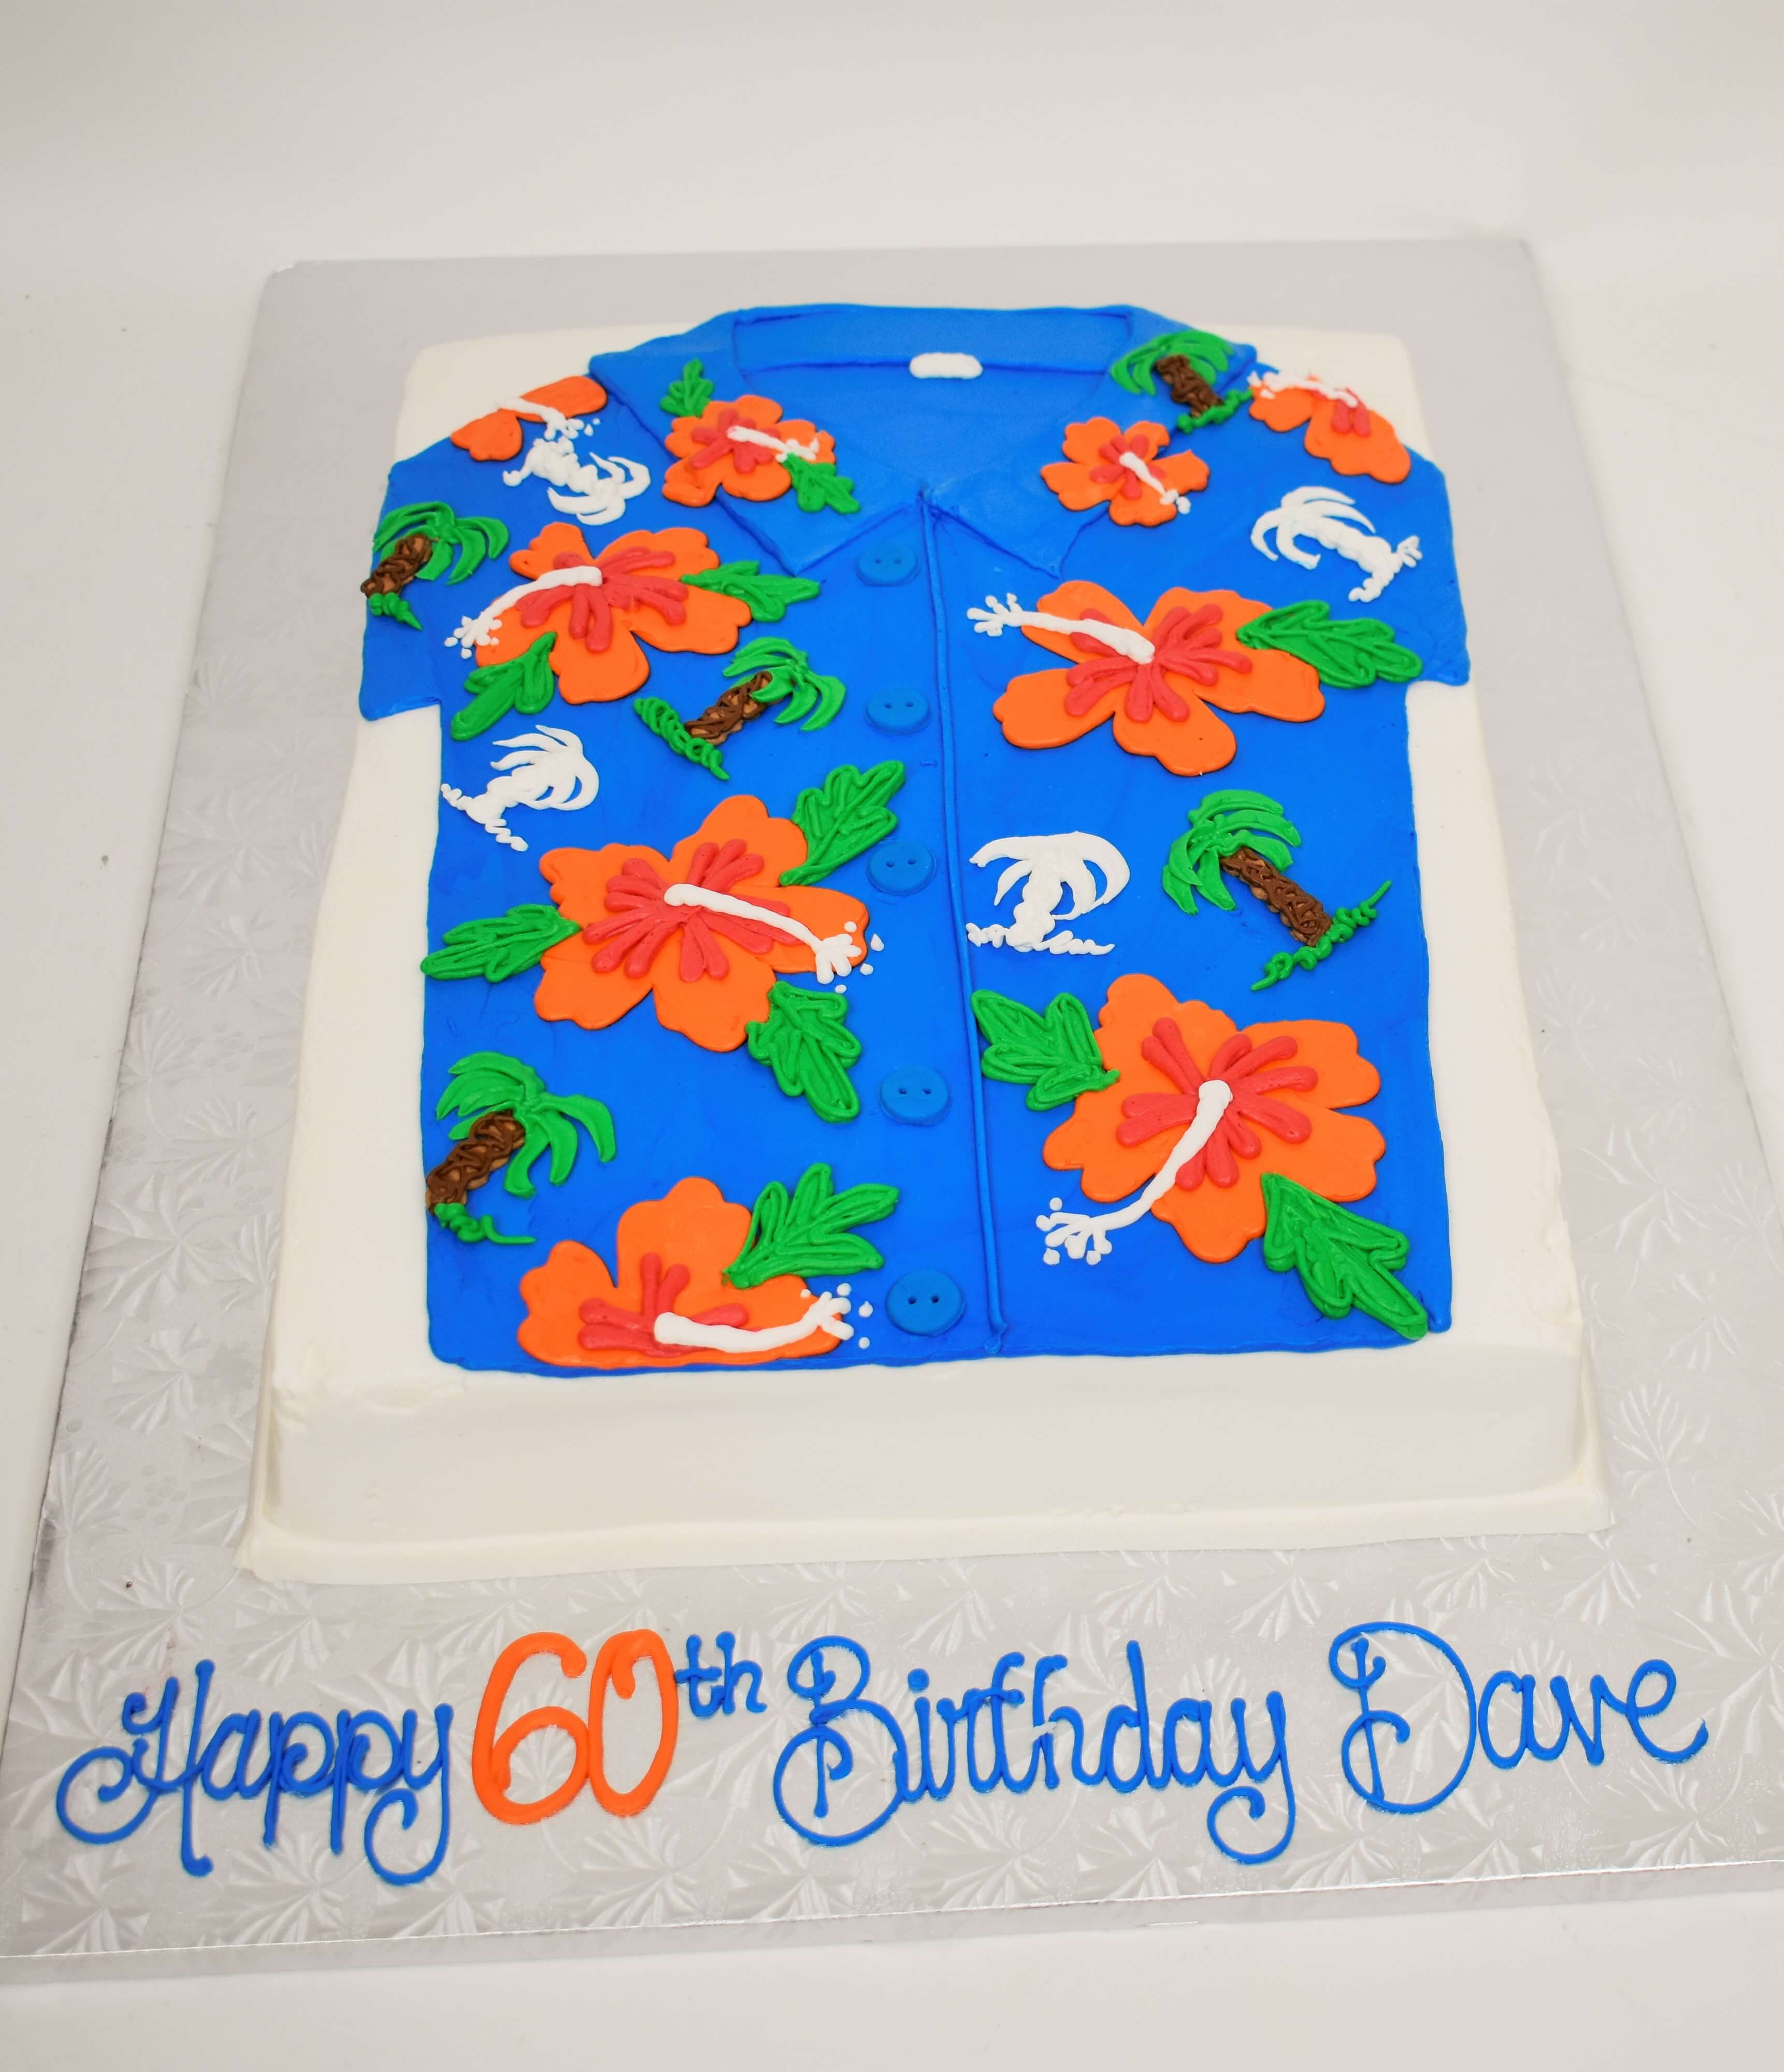 McArthur's Bakery Custom Cake with Hawaiian Shirt, Blue Shirt, Orange Flowers, White Palm Trees